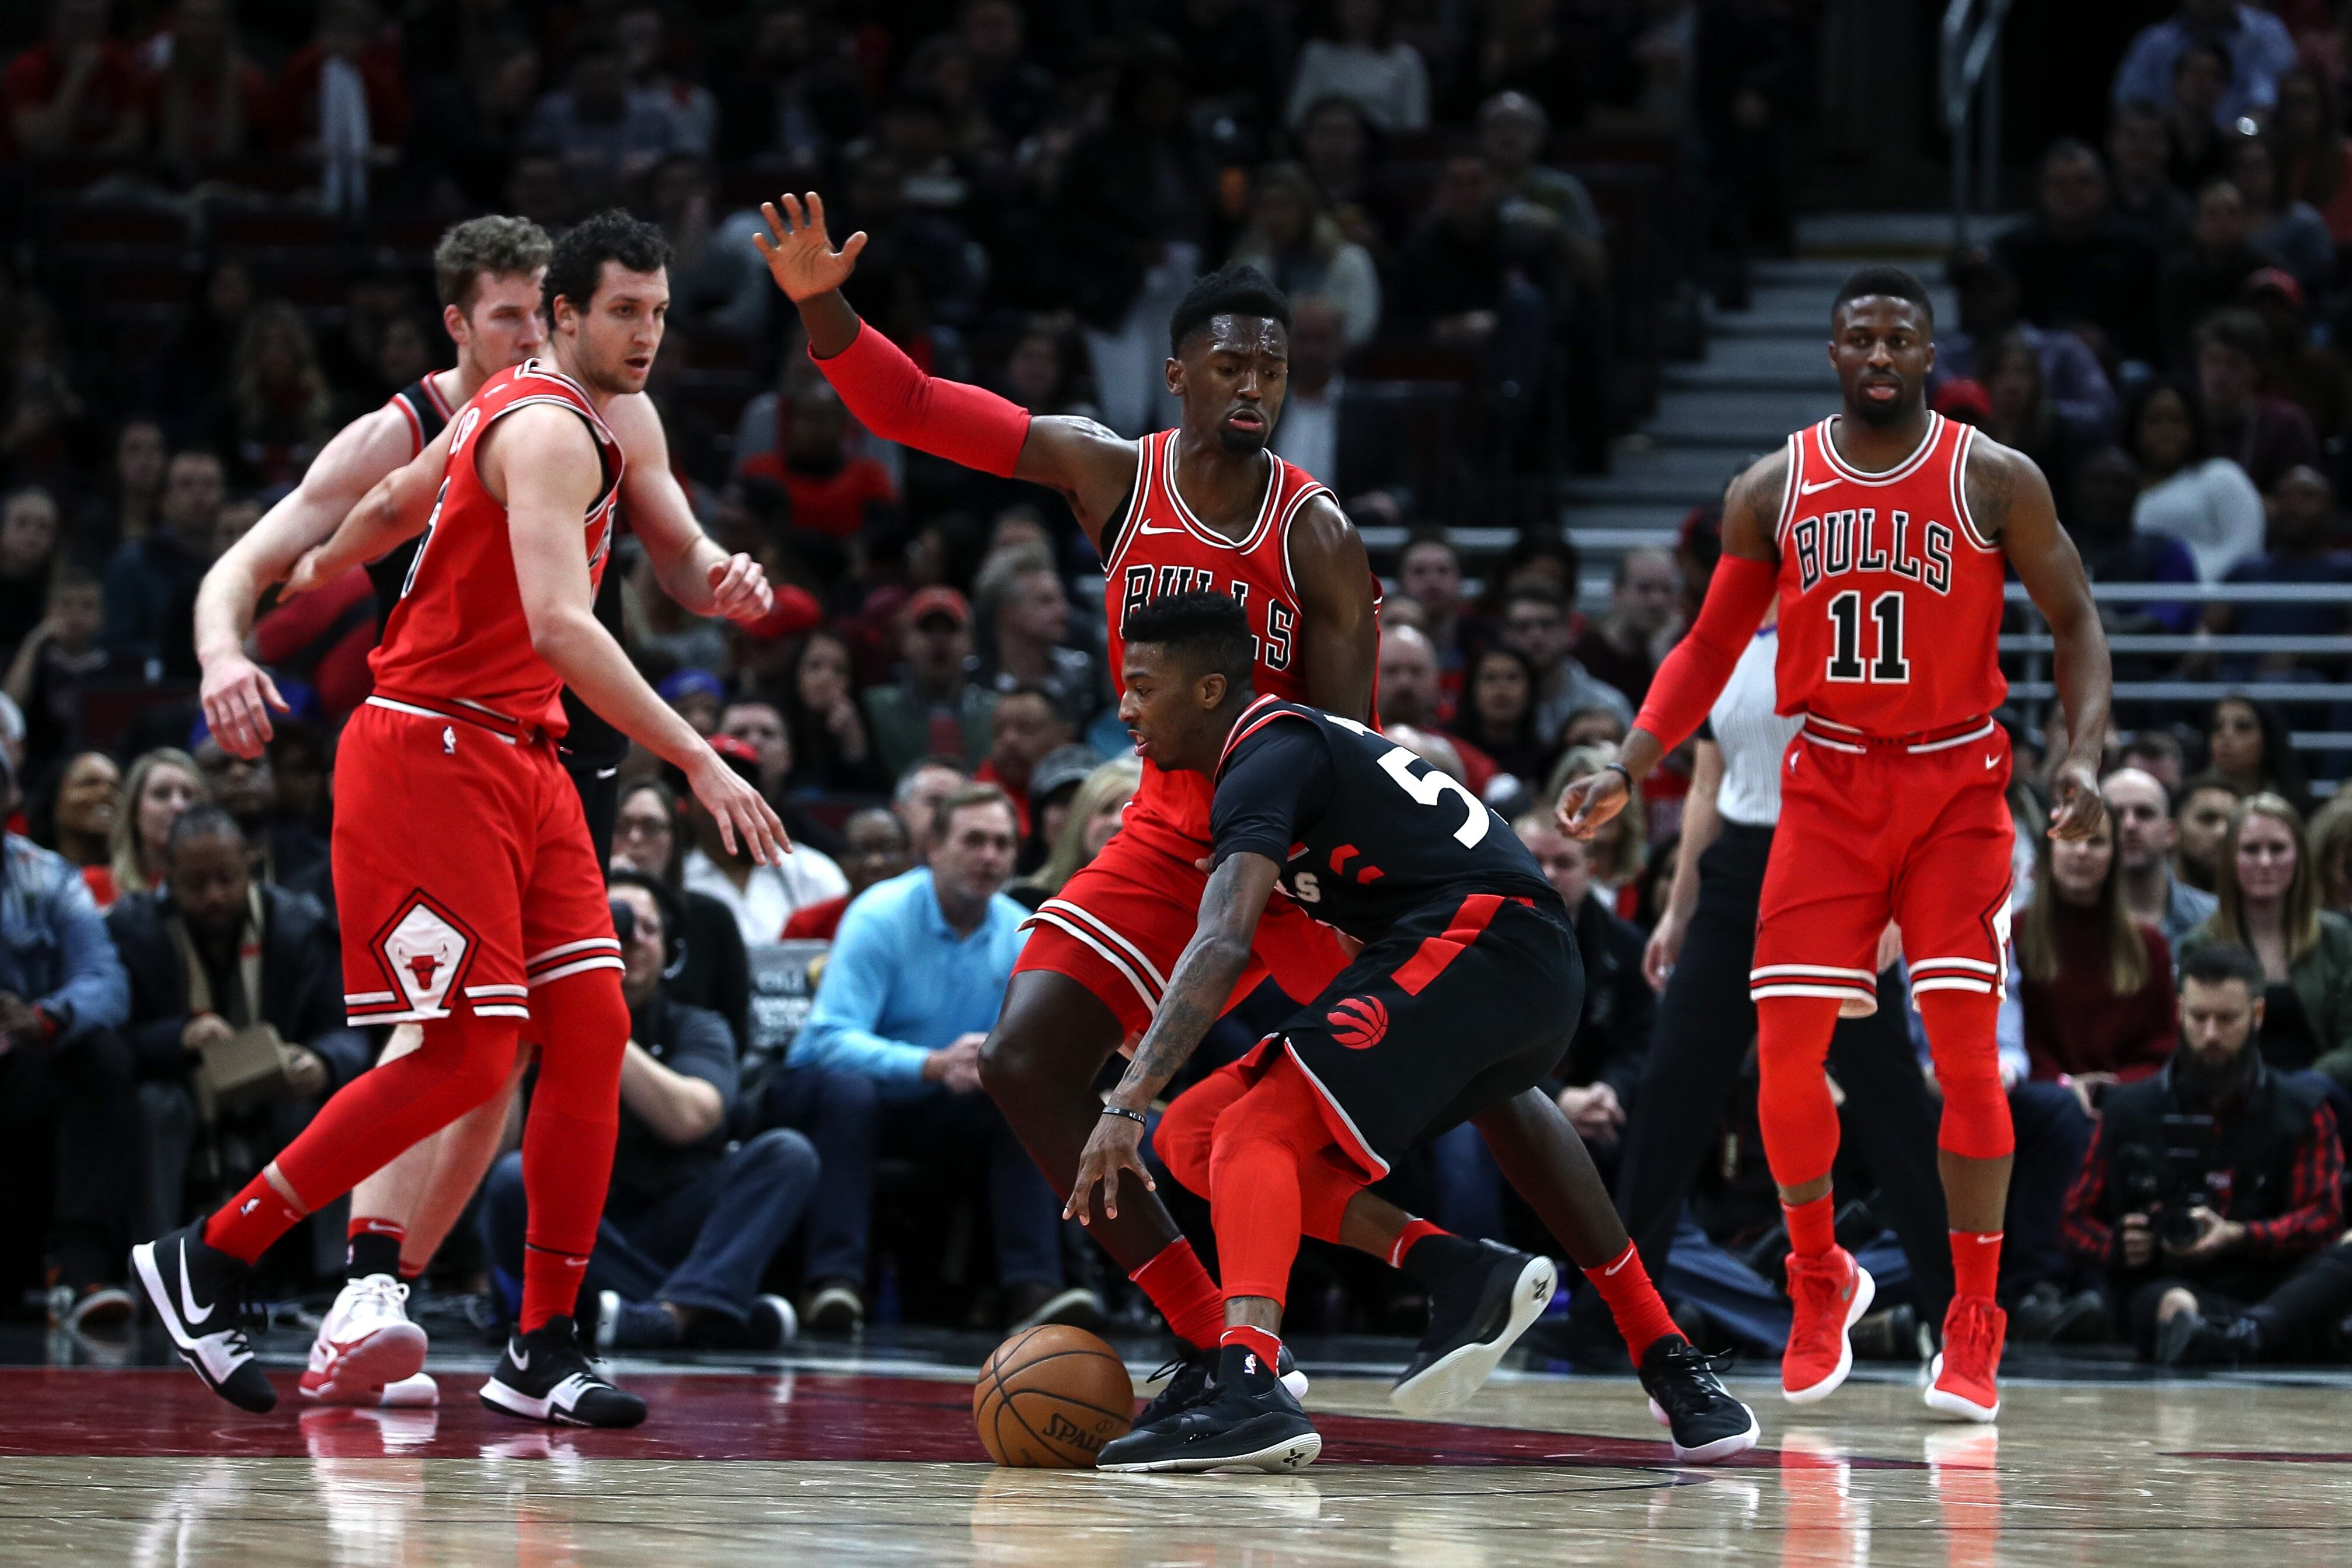 the reasons why the chicago bulls are so good as a team Lebron james has yet to re-sign with the cleveland cavaliers here's why he should consider going to join dwyane wade and the chicago bulls.